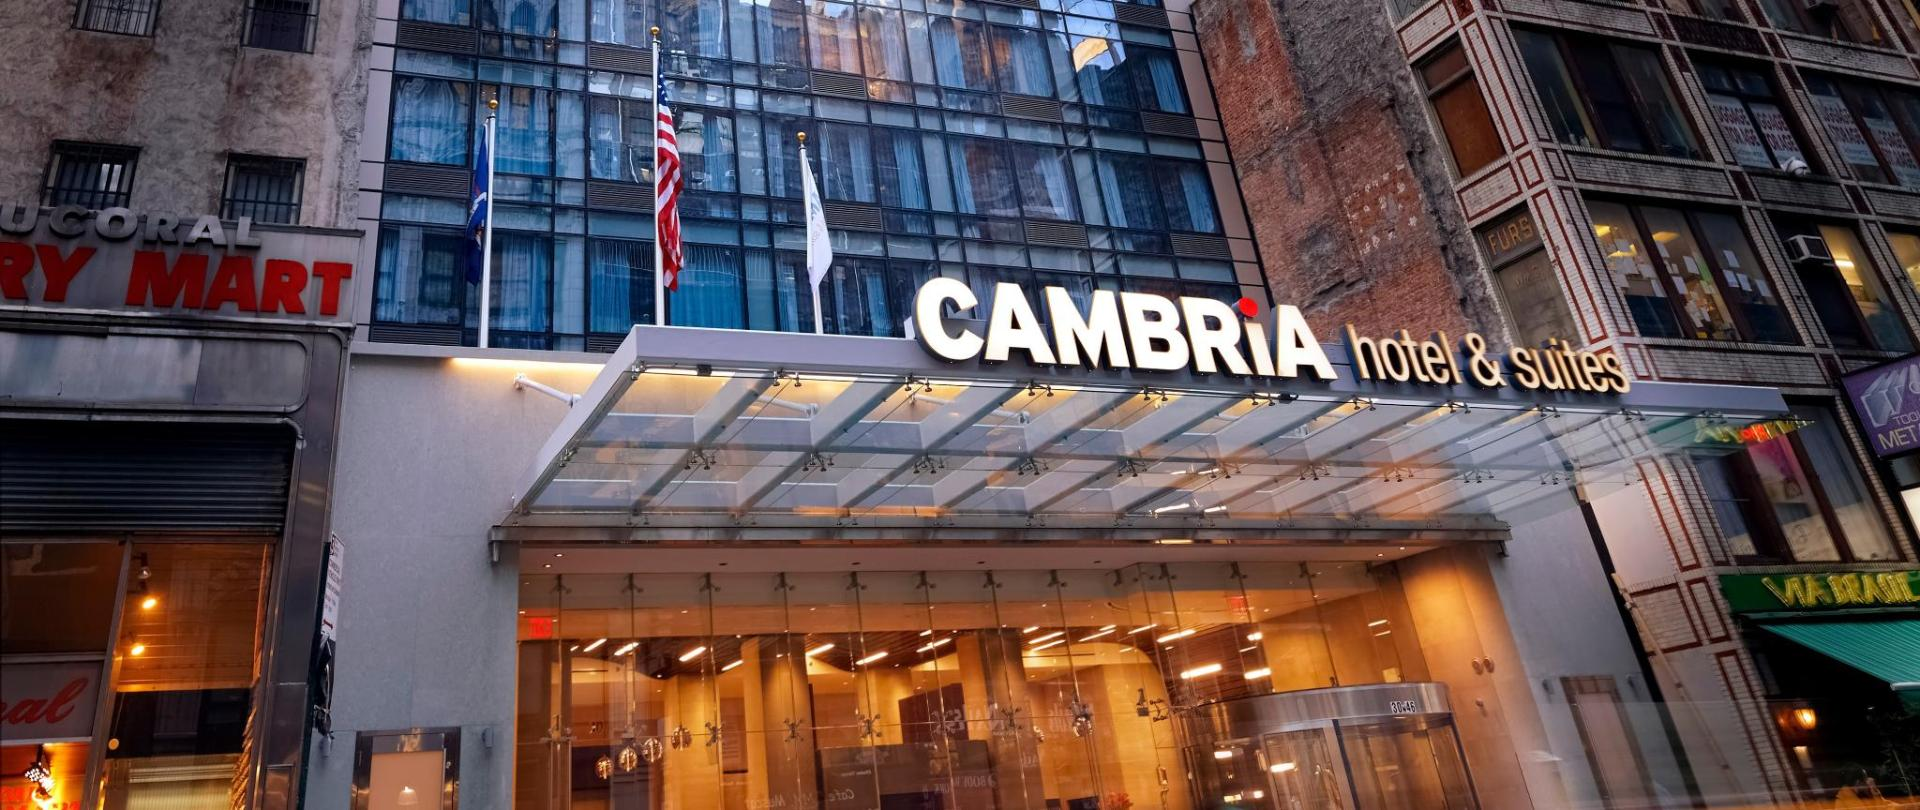 Hotels In New York City >> Times Square Hotel New York City Hotel Cambria Hotel